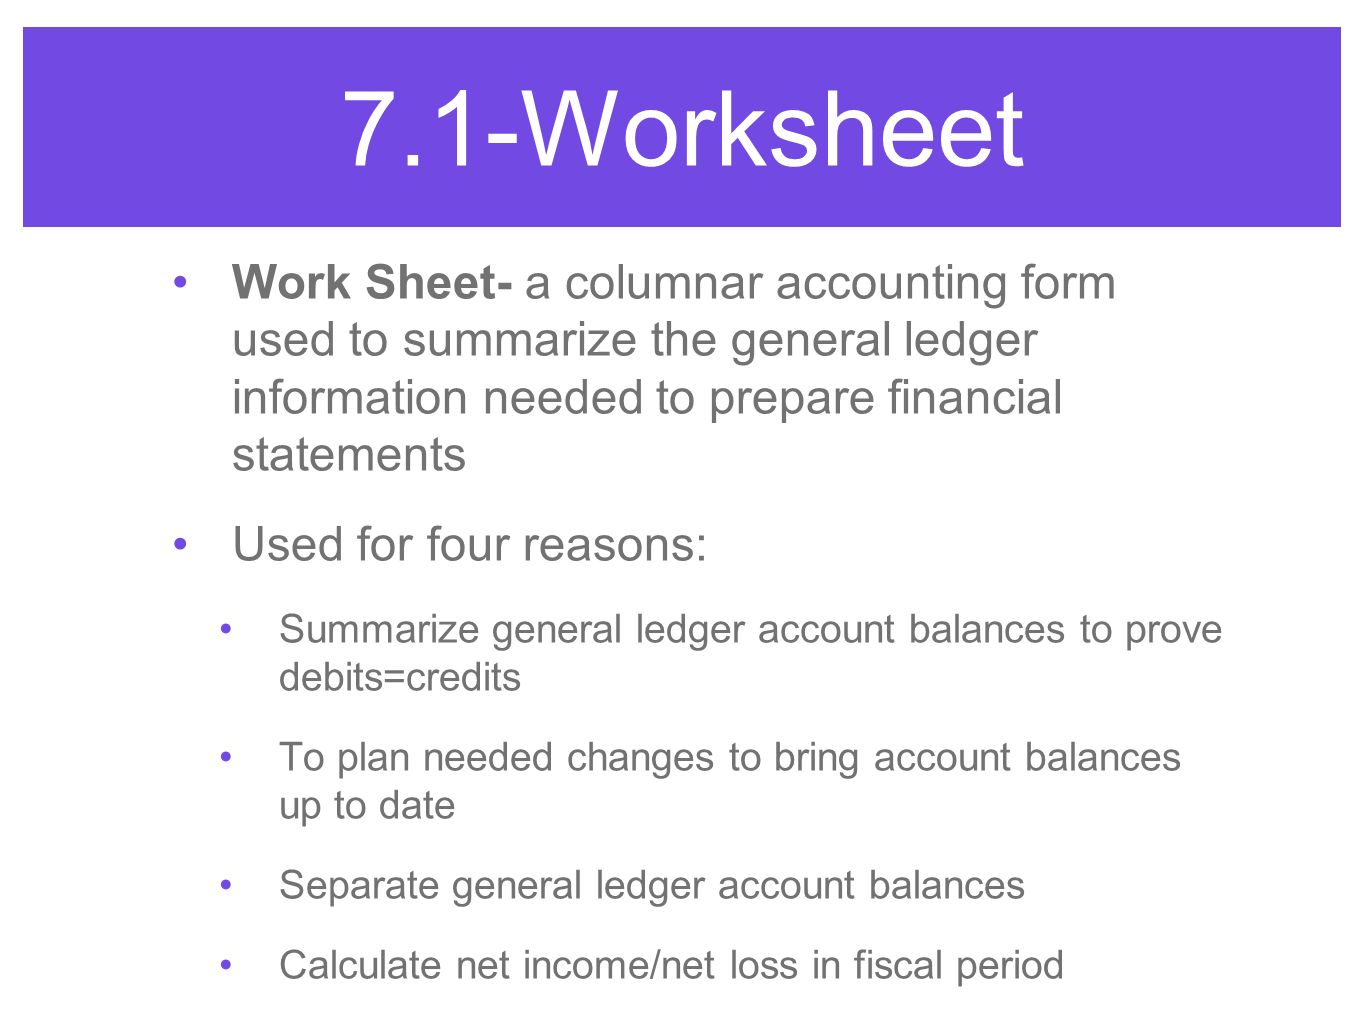 Worksheet For A Service Business